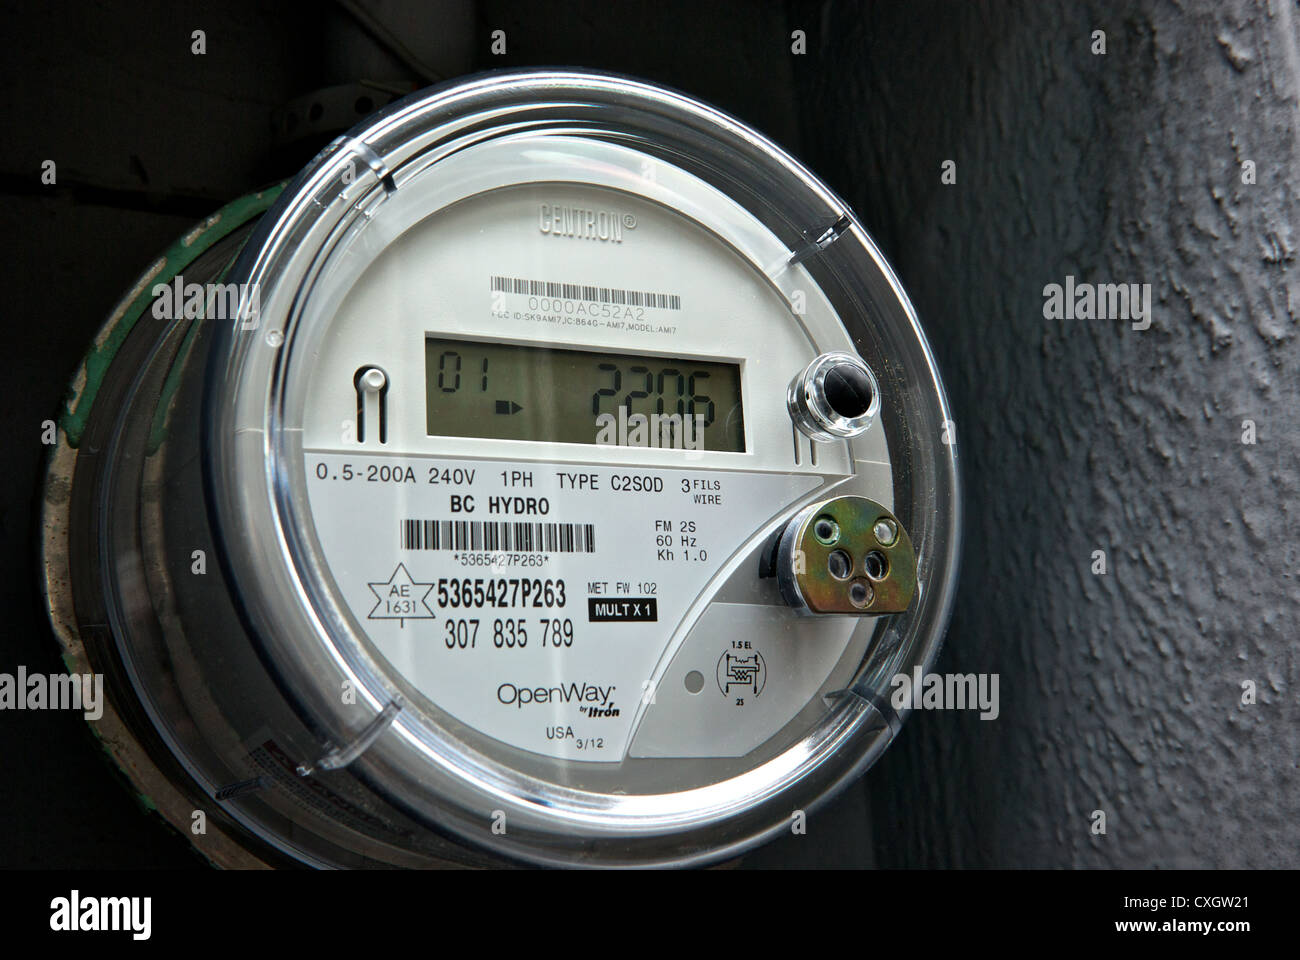 Power Consumption Meter Stock Photos & Power Consumption